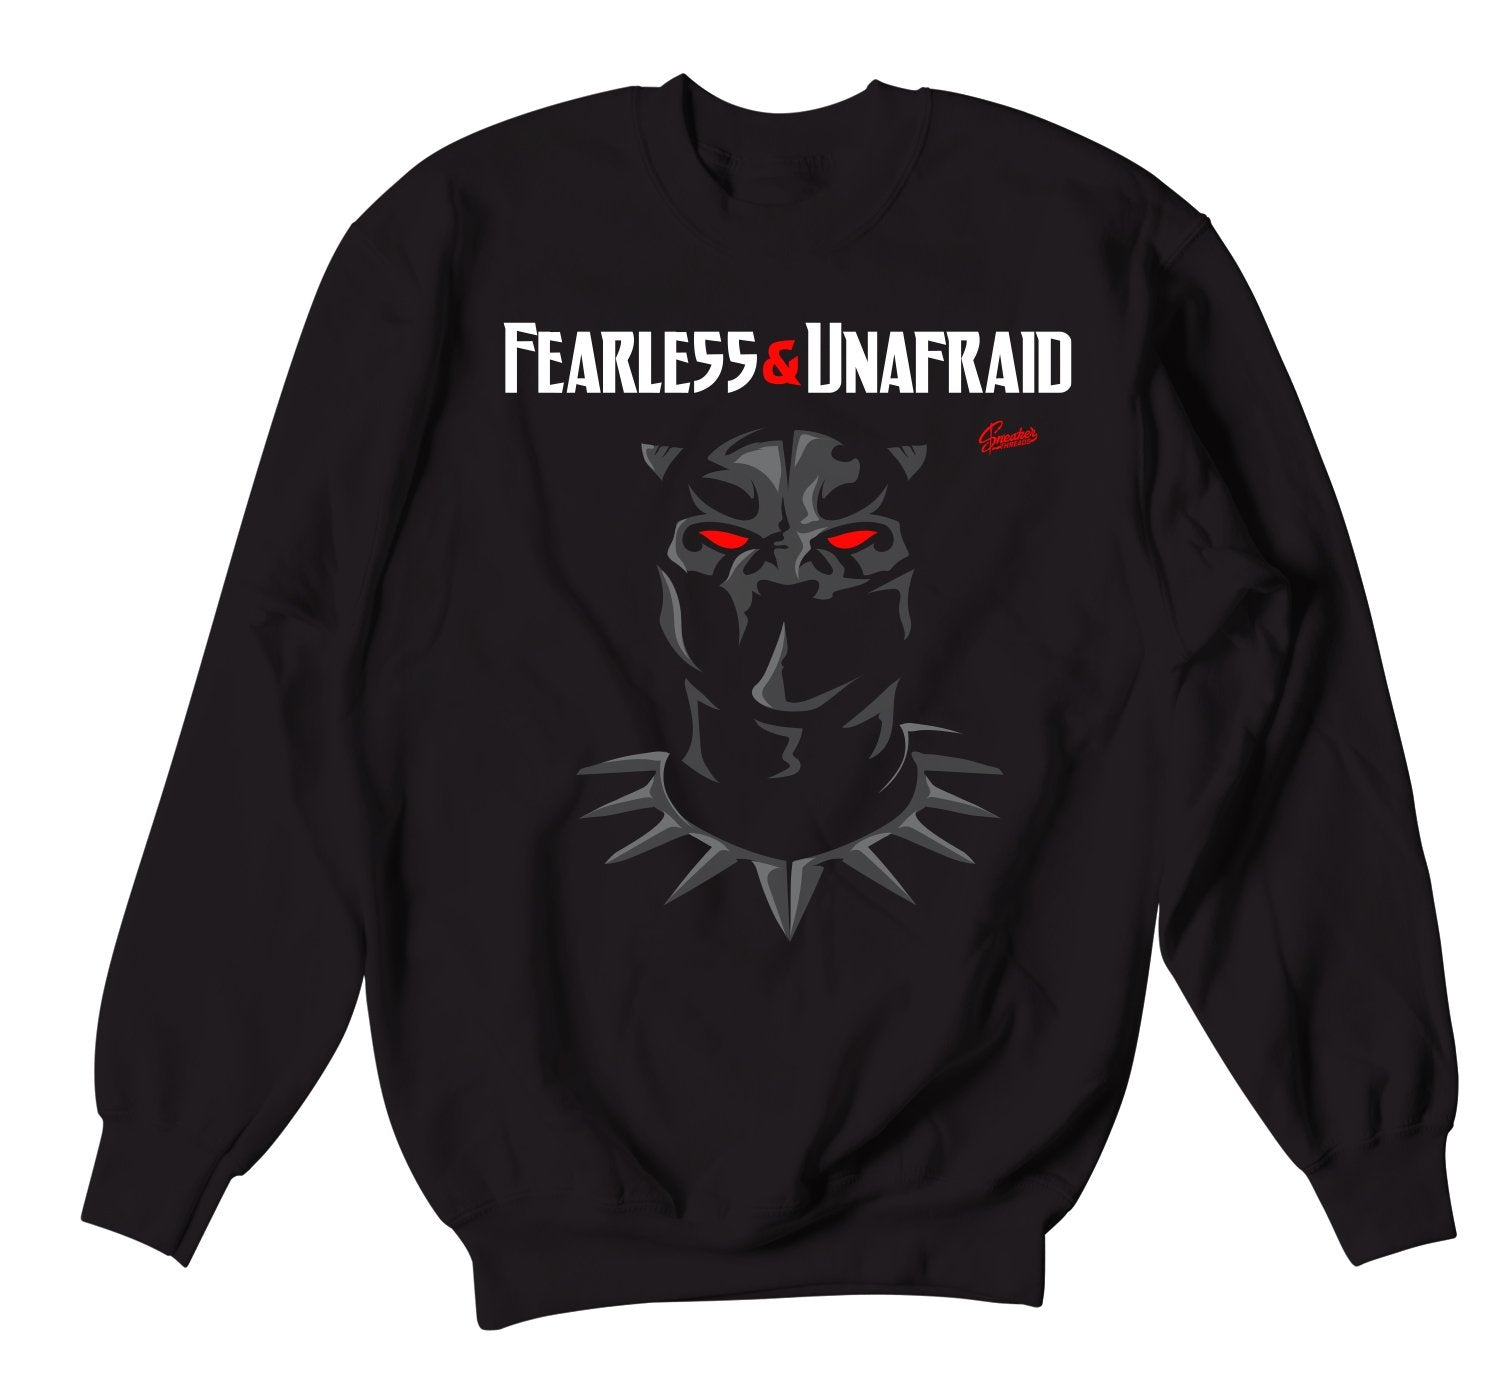 Sweatshirt collection designed to match the Jordan 4 black cat sneakers